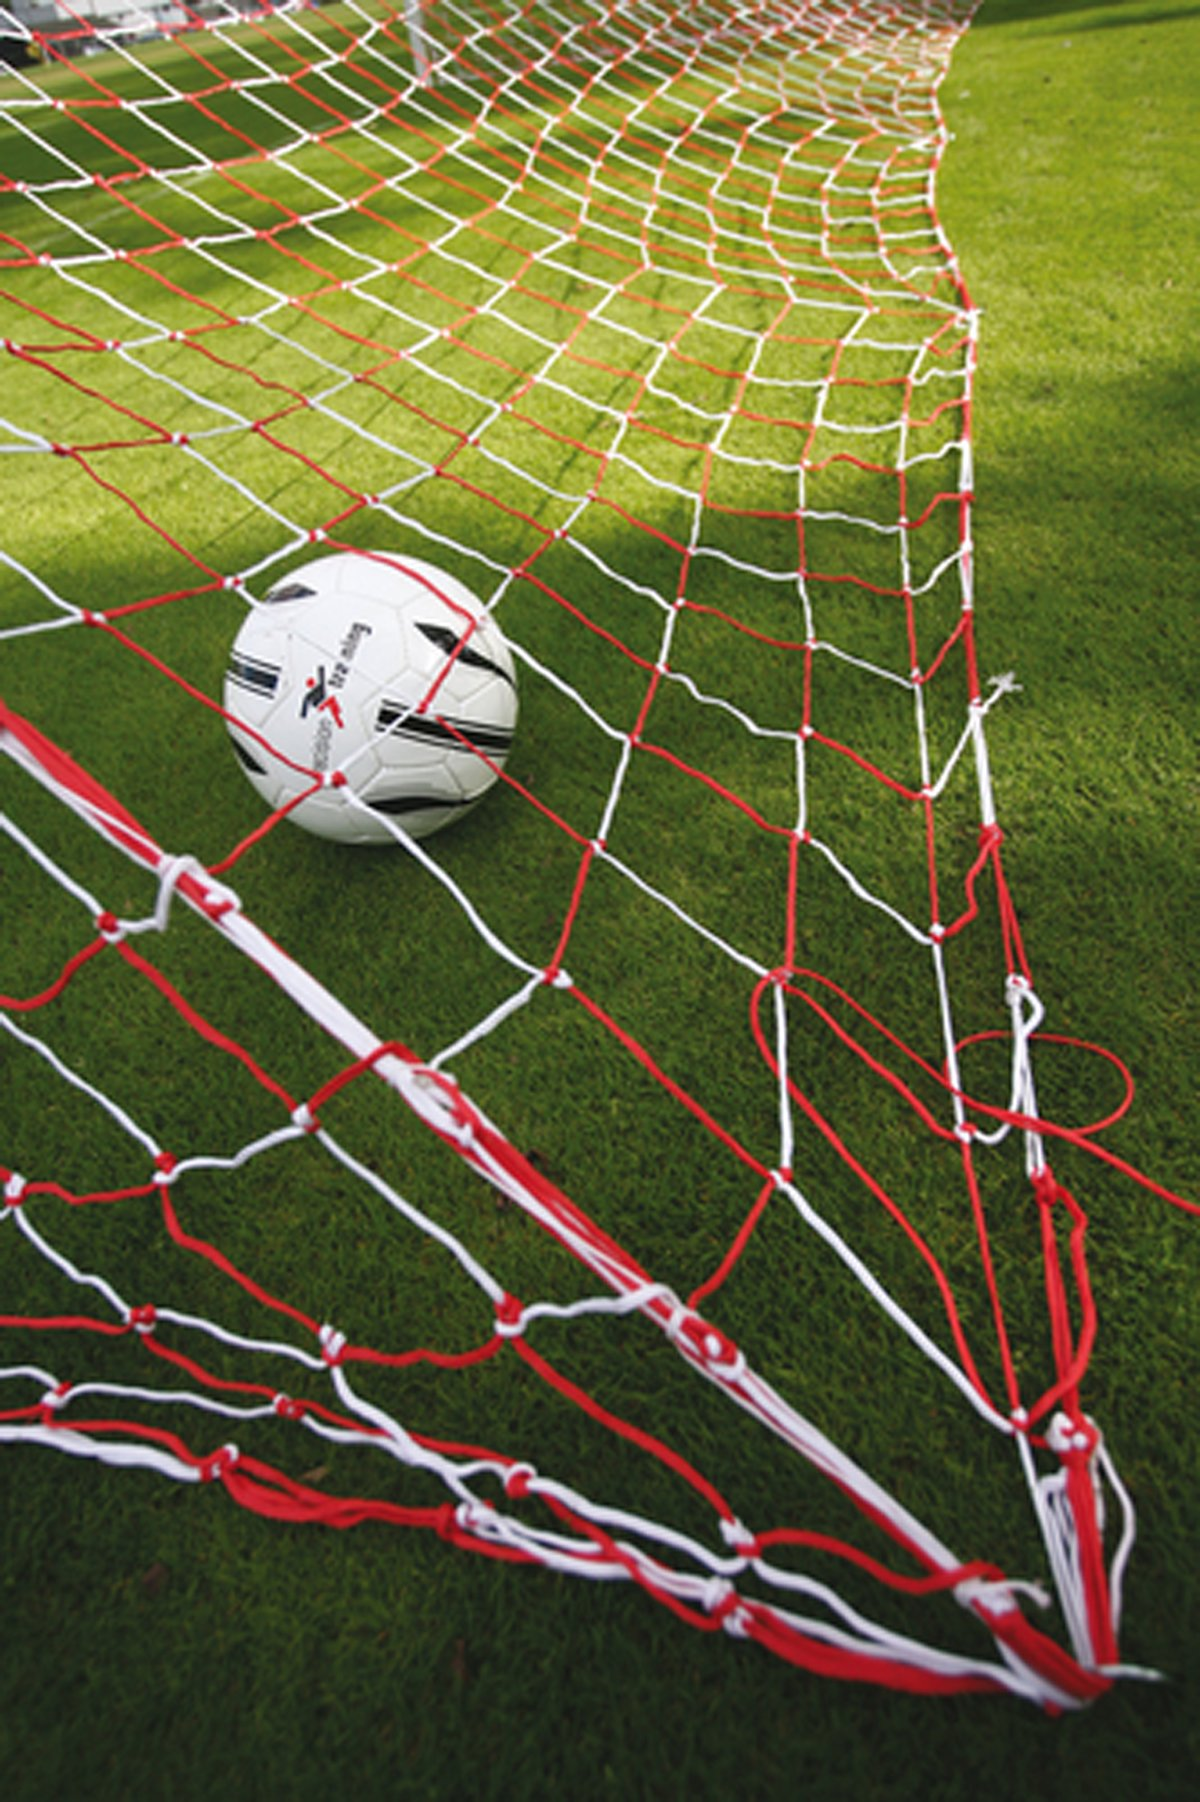 Precision Soccer Field Equipment 4mm Polyethylene Square Mesh Goal Net Only